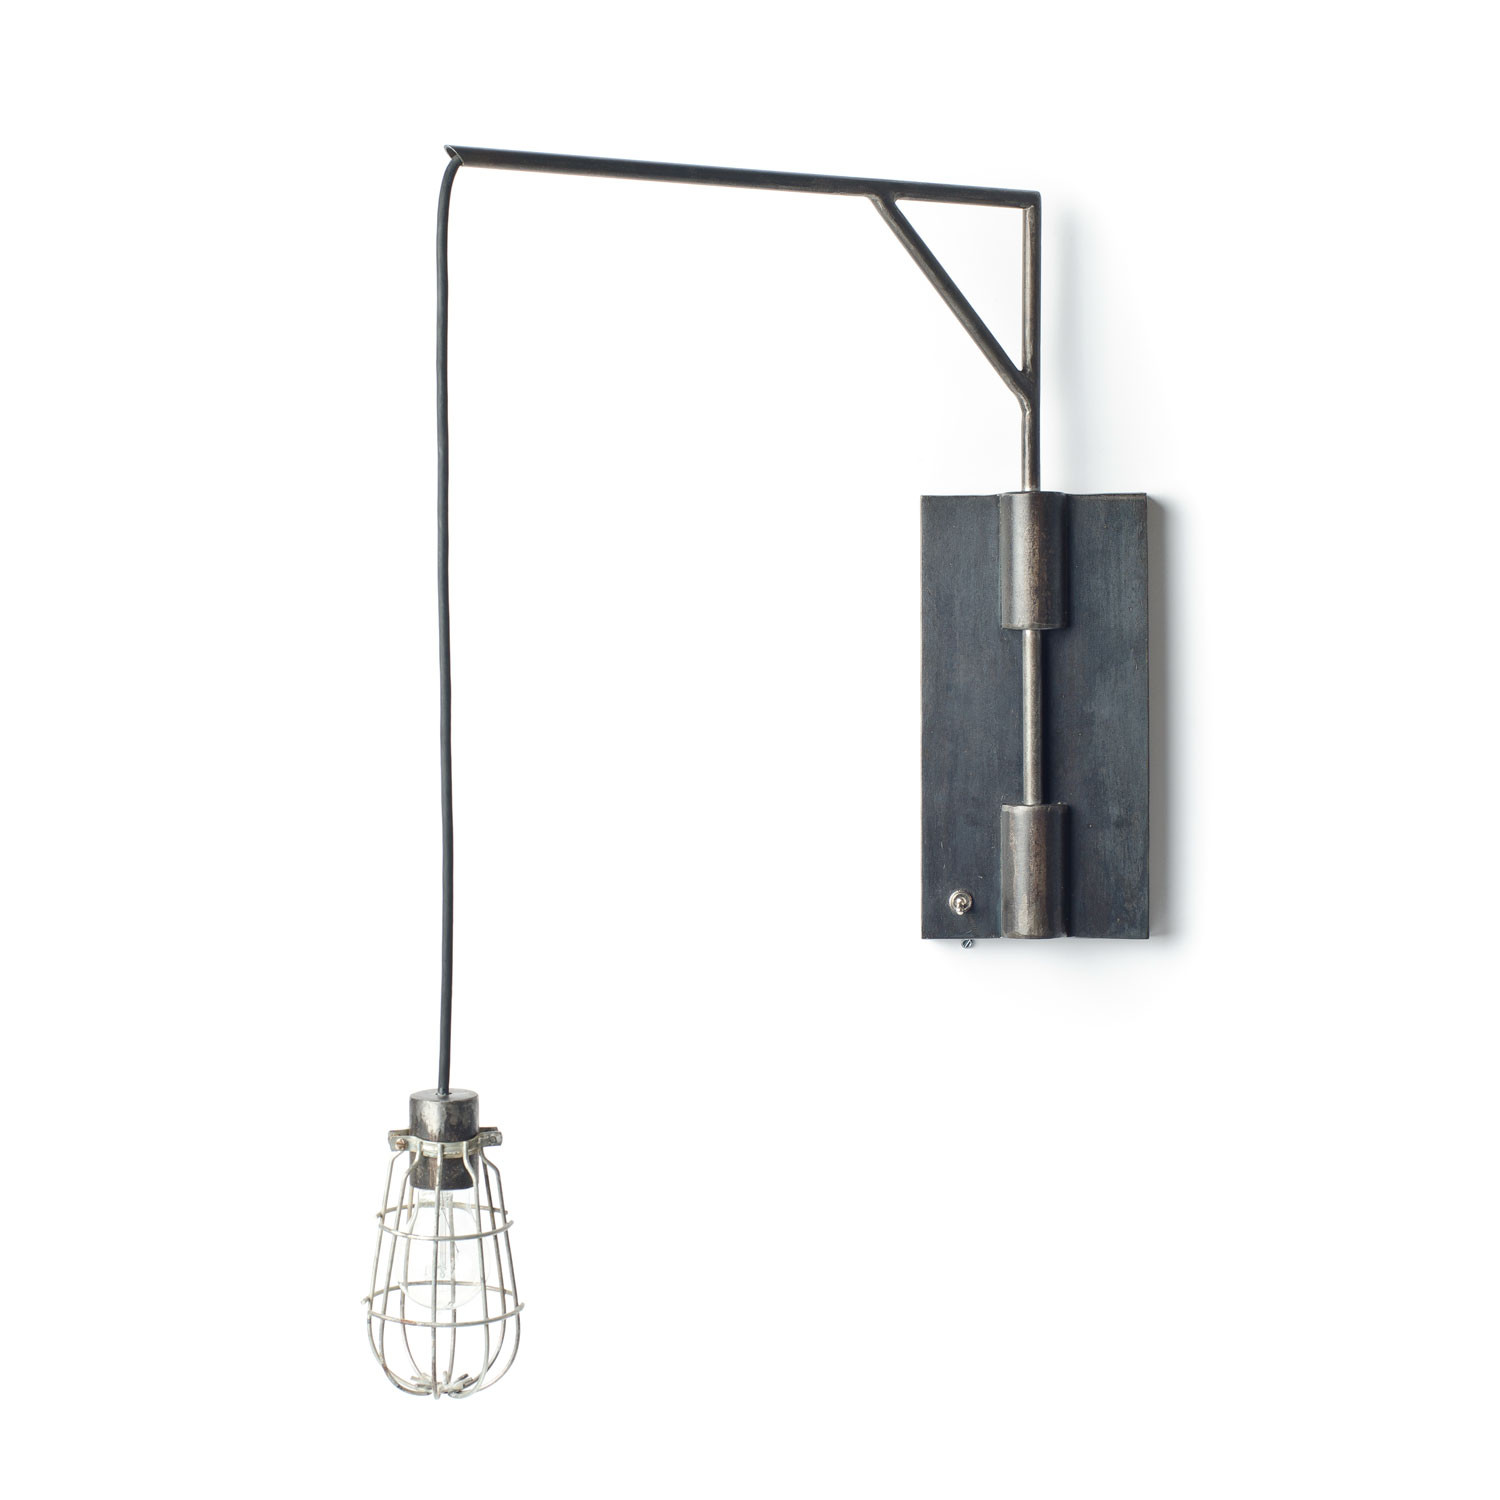 Swing-Arm Wall Sconce - Project Sunday - Touch of Modern